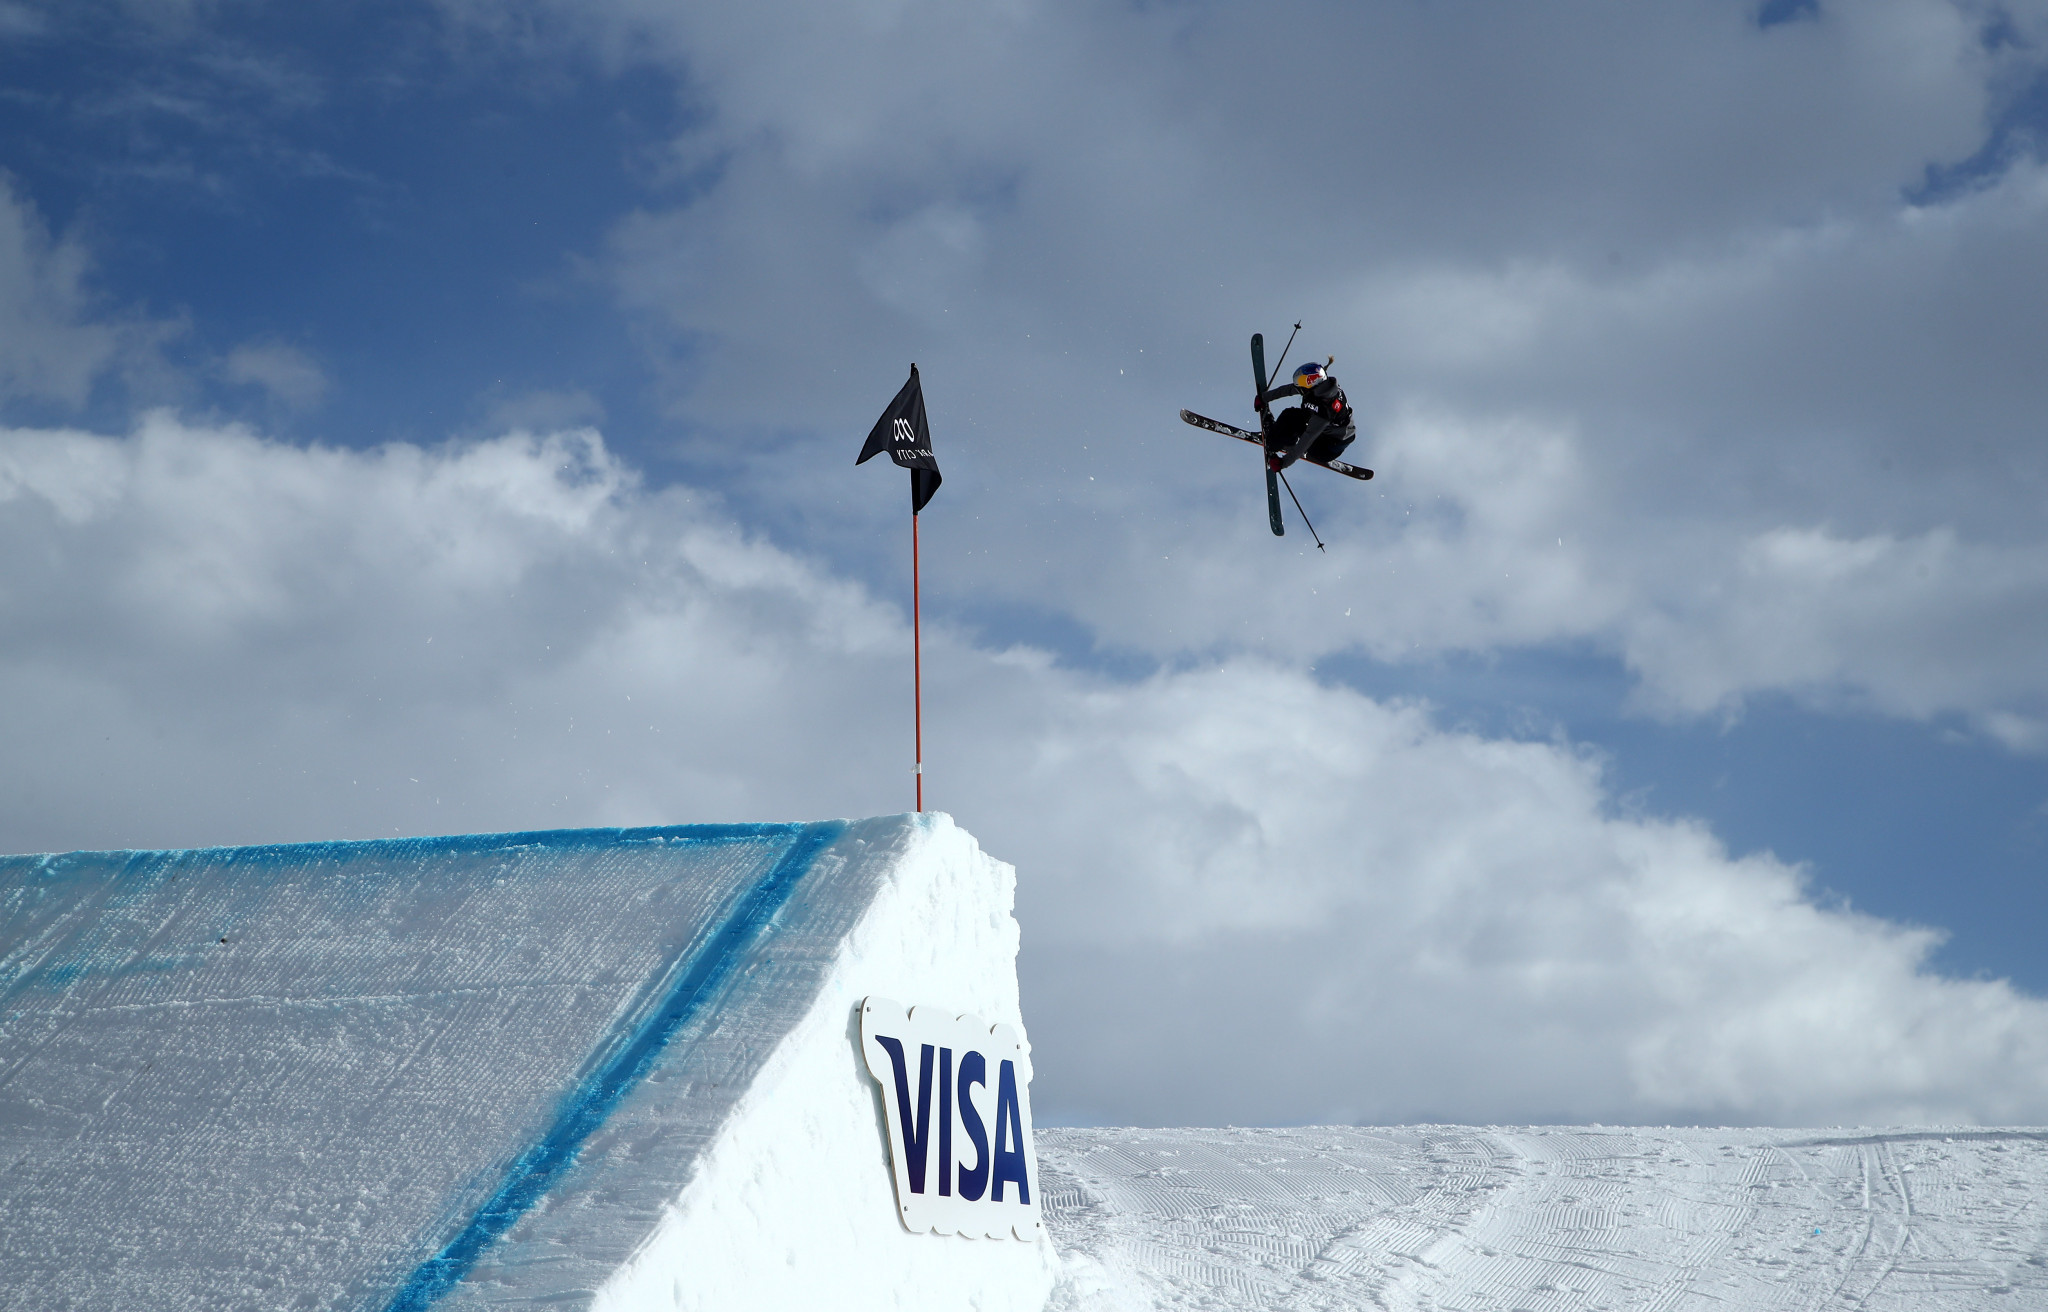 Ledeux and Bösch clinch historic freeski big air titles at FIS Freestyle Ski and Snowboard World Championships